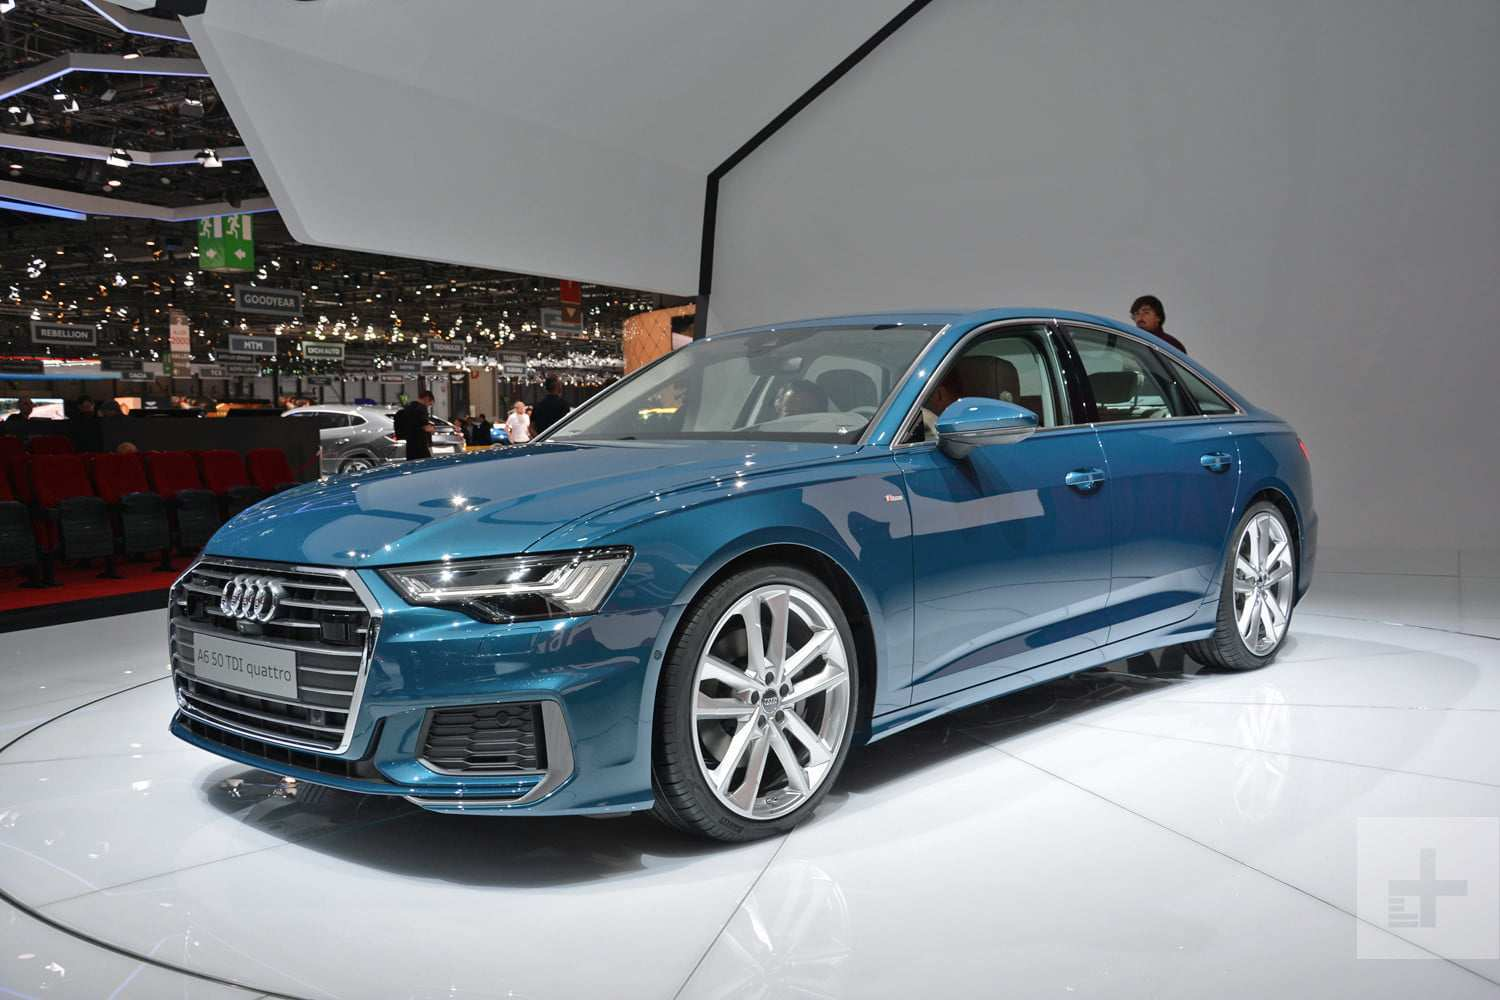 20 Concept of New Audi New A6 2019 Performance Specs and Review by New Audi New A6 2019 Performance